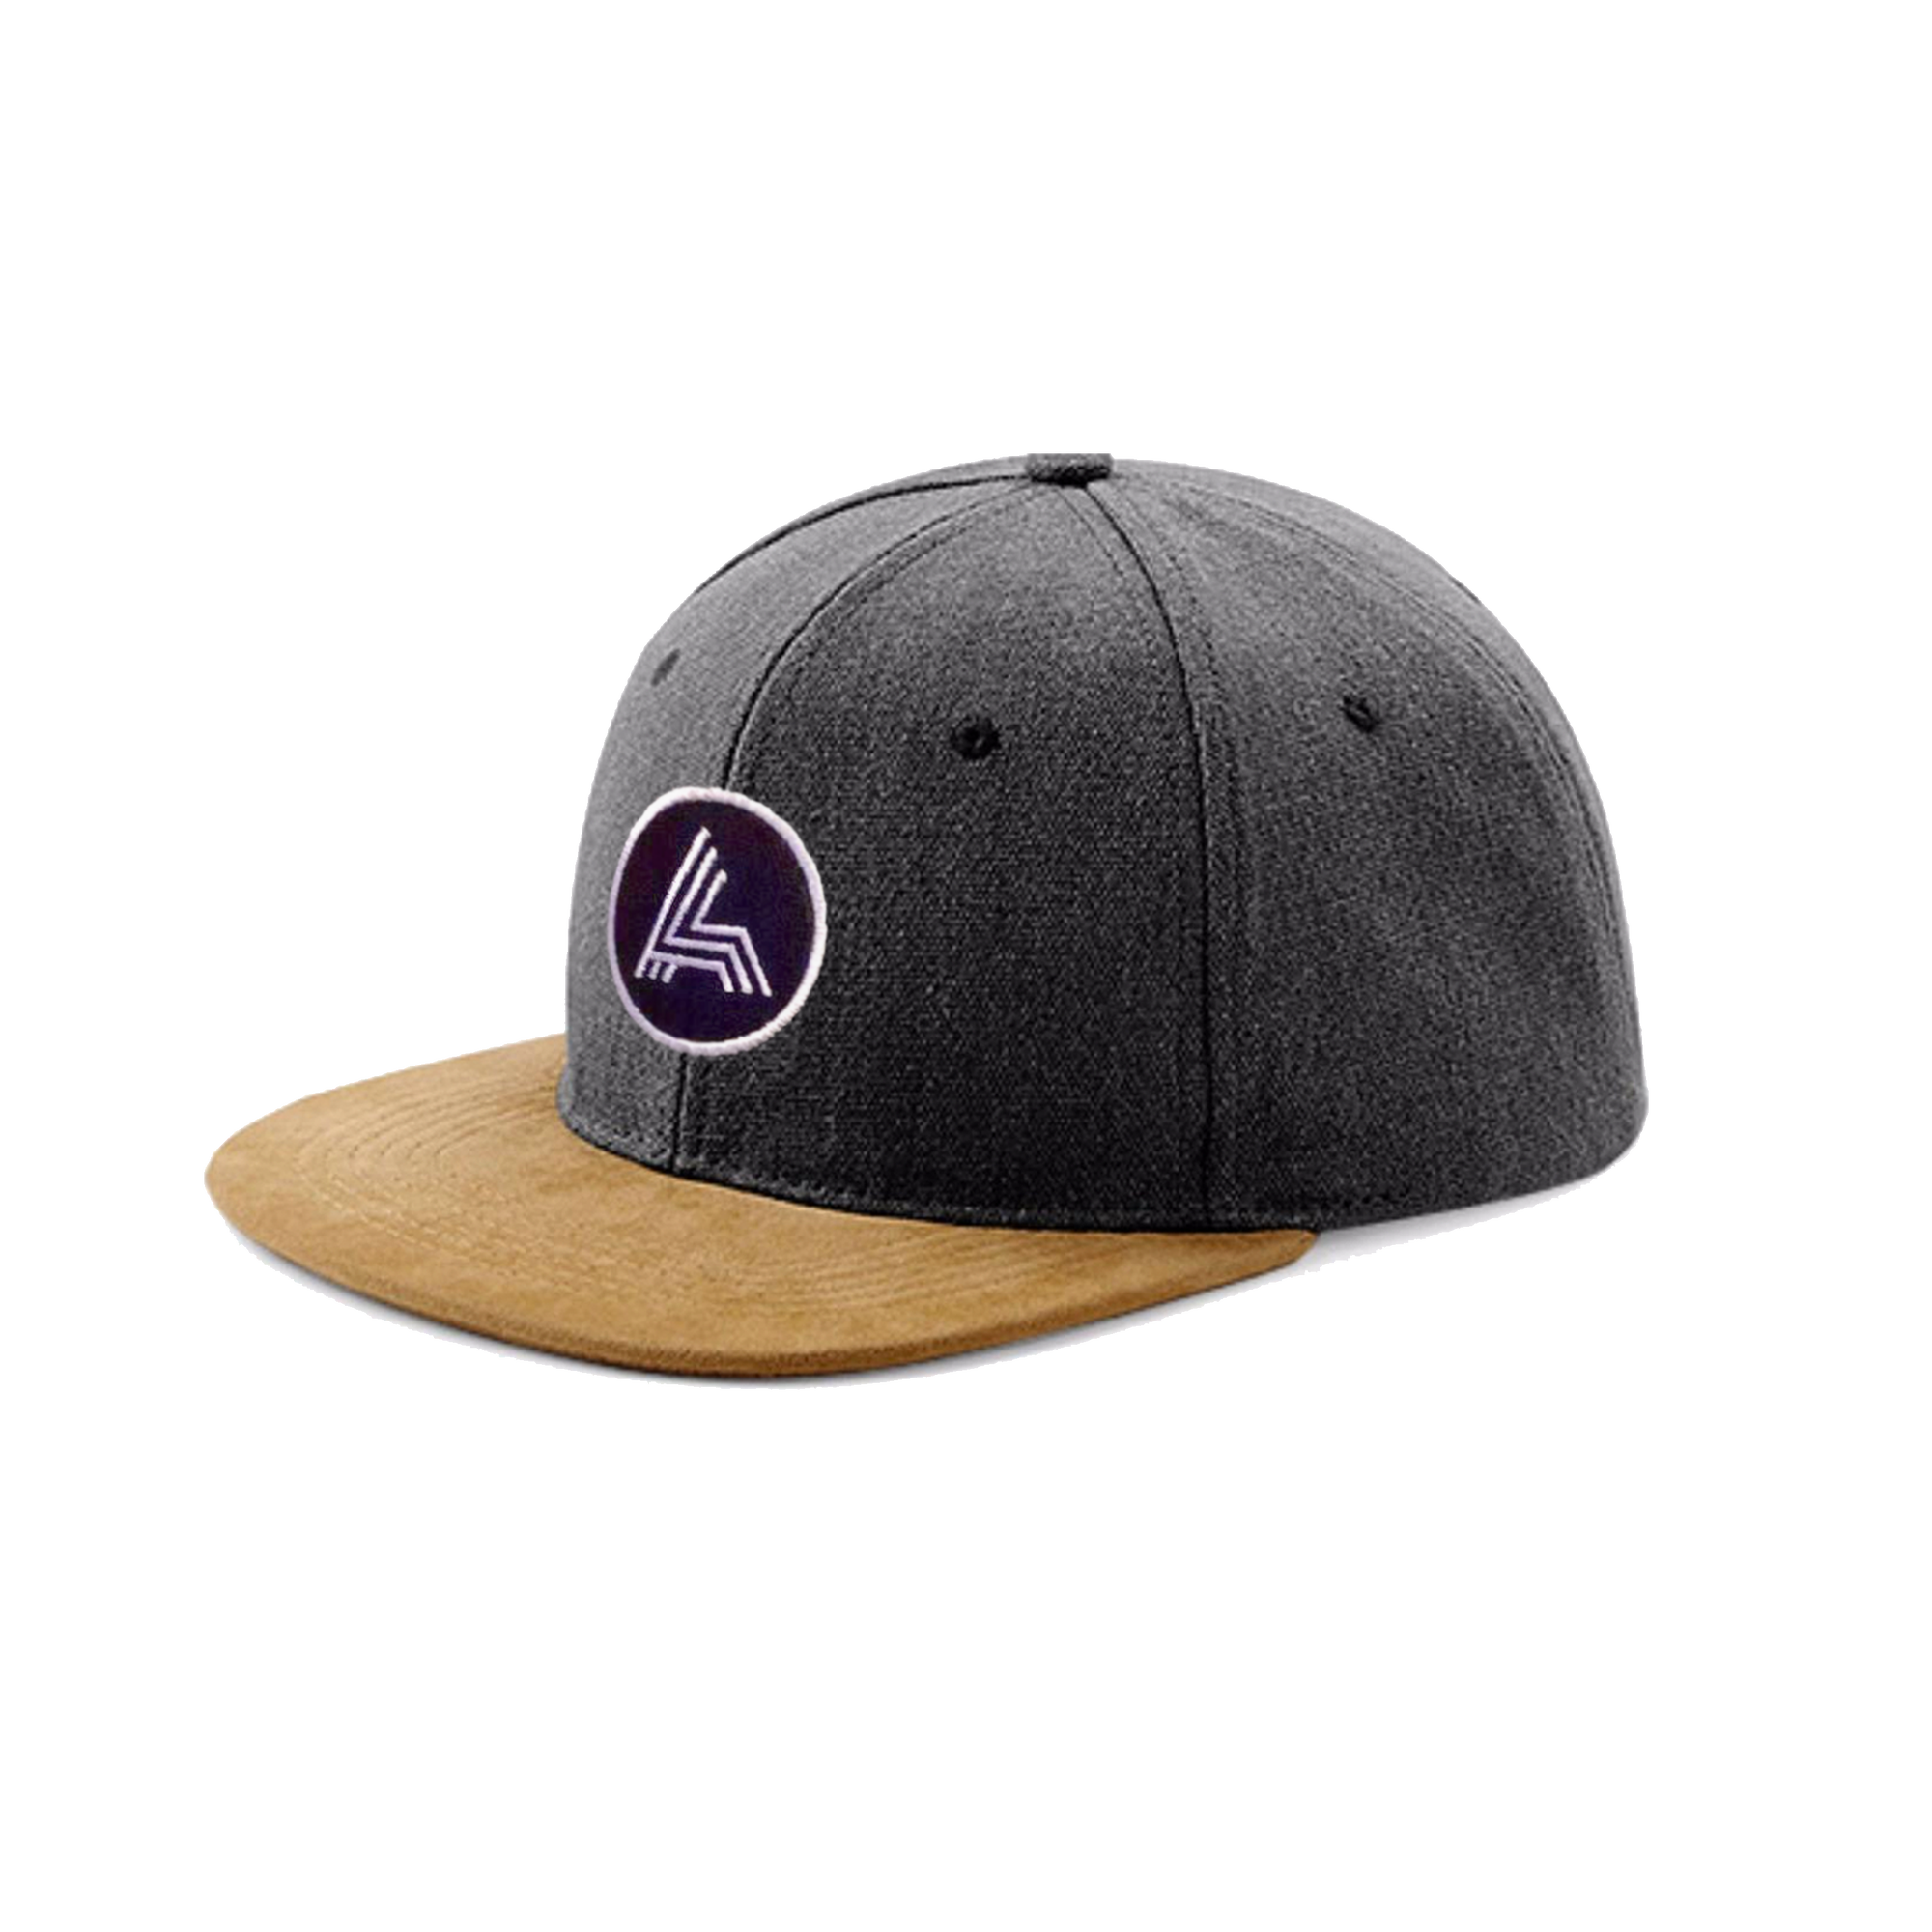 99342764c146c House of Après — The Snapback